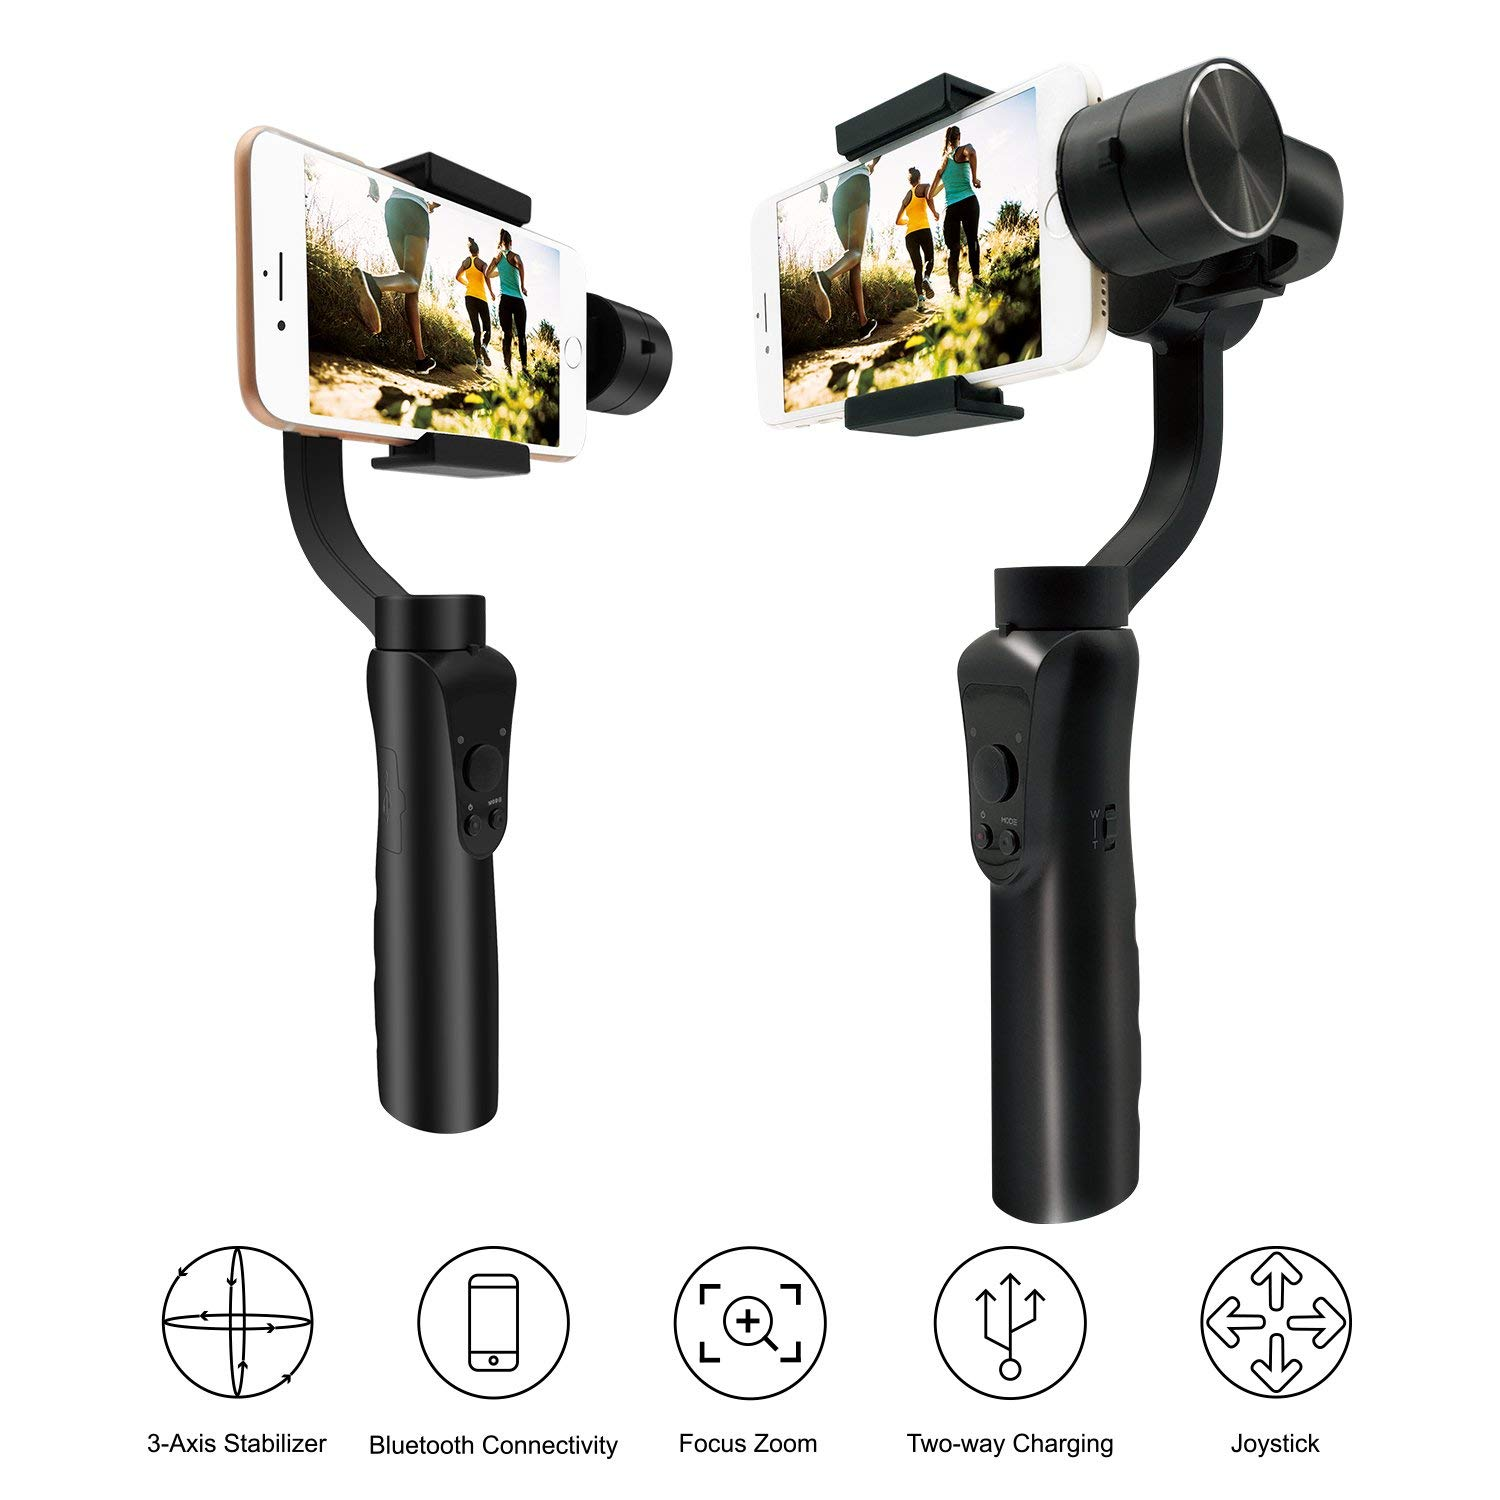 3 Axis Handheld Gimbal Stabilizer, Selfie Stick Travel Gimbal-Intelligent Focus Pull&Zoom Capability Bluetooth APP Controls, O3 Axis Handheld Gimbal Stabilizer, Selfie Stick Travel Gimbal-Intelligent Focus Pull&Zoom Capability Bluetooth APP Controls, O